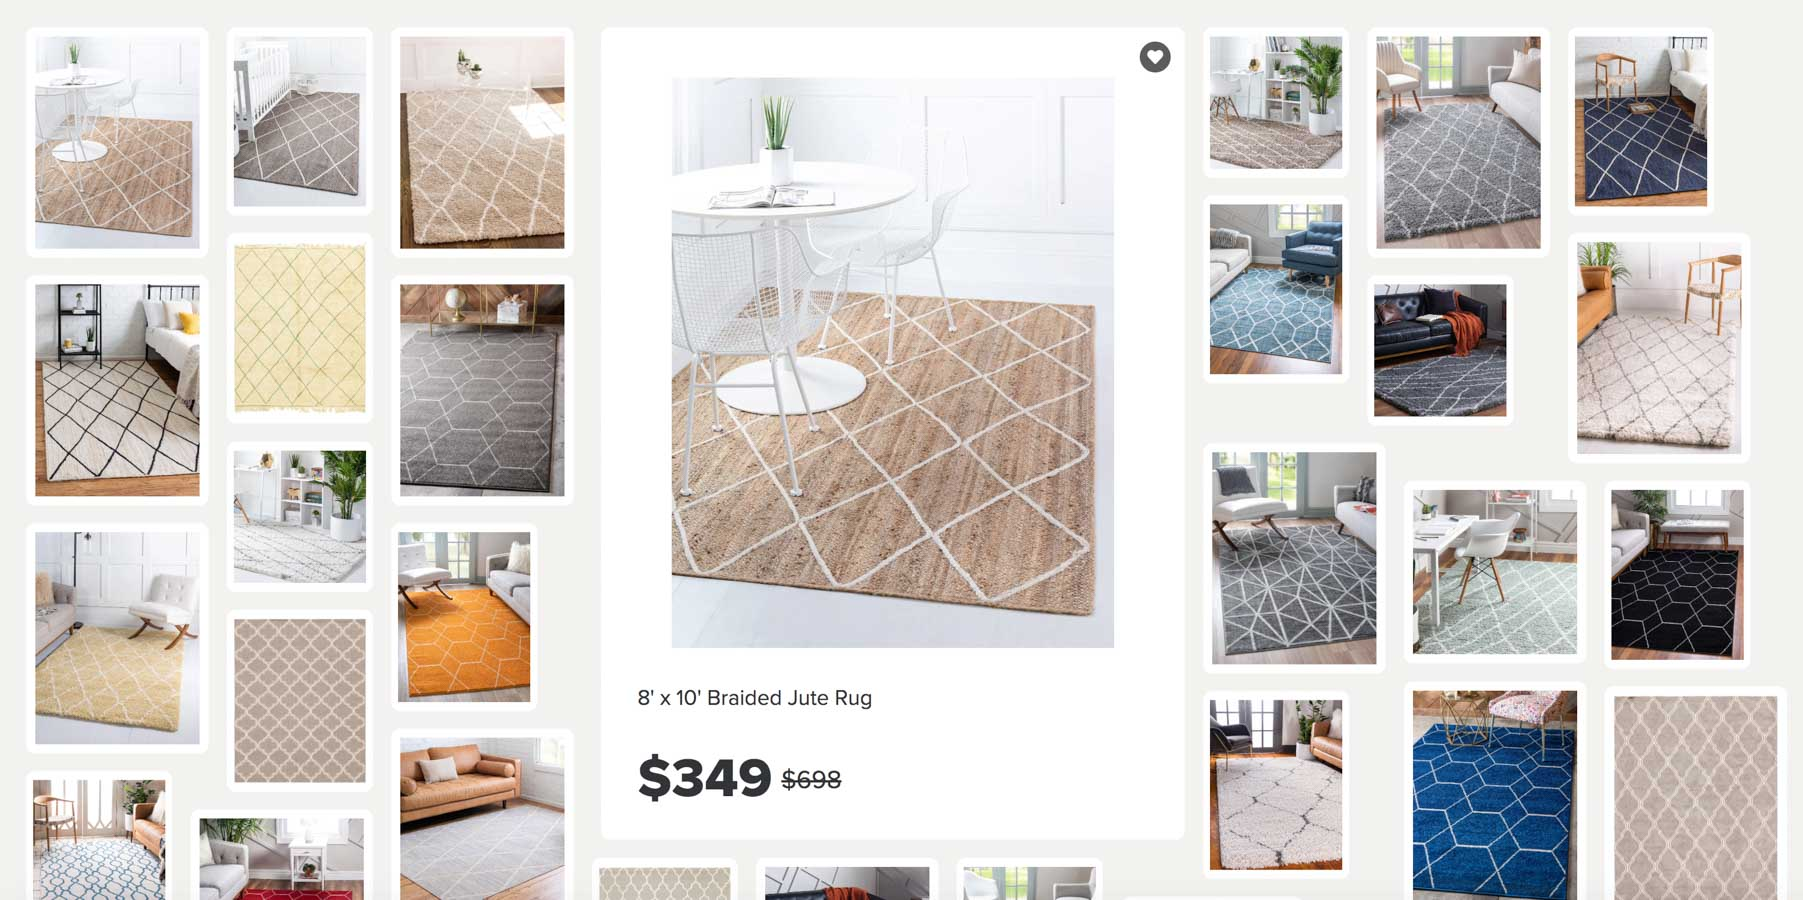 Love this way of shopping for rugs - such a great tool!